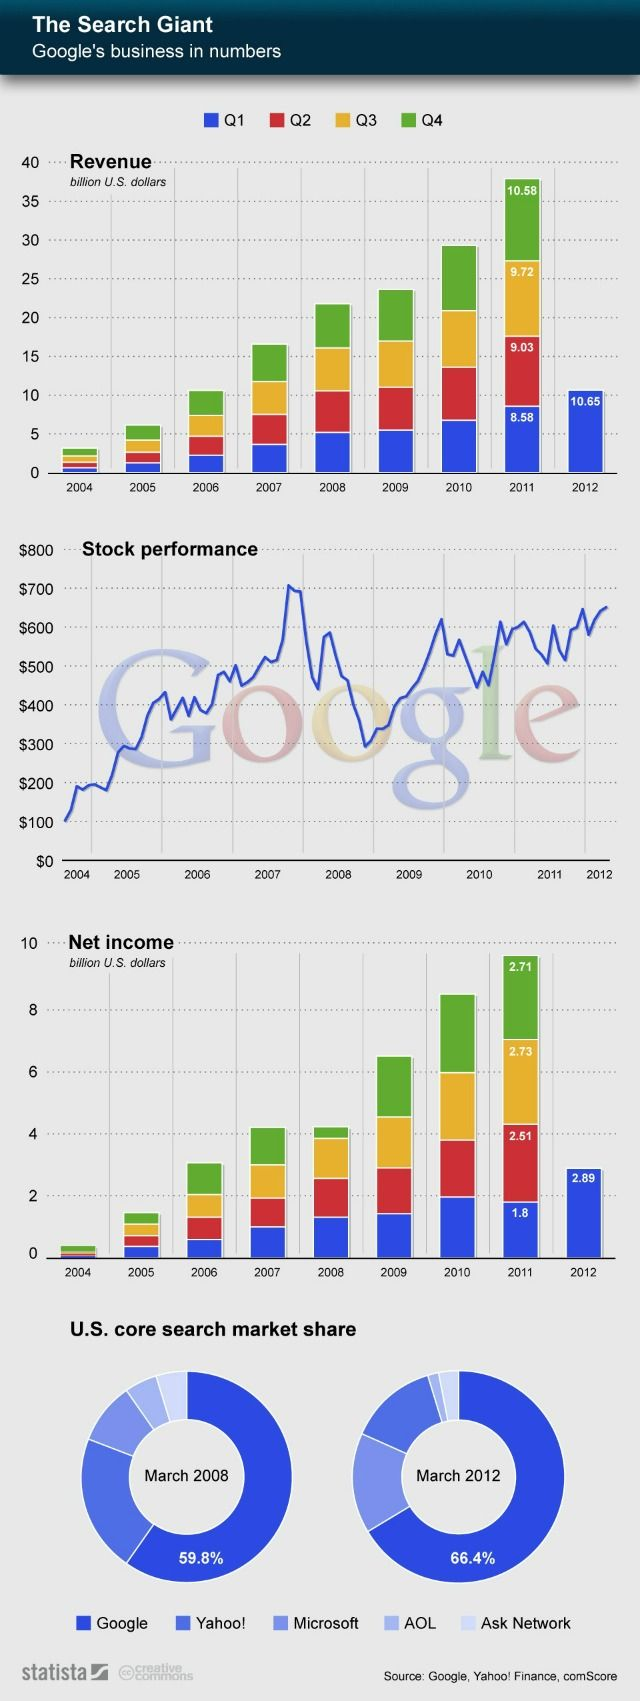 Google's Growth #infographicsTechnology Infographic, Ems Números, Amazing Growth, Social Media, Media Infographic, Search Giants, Google Business, Google Amazing, Google Infographic